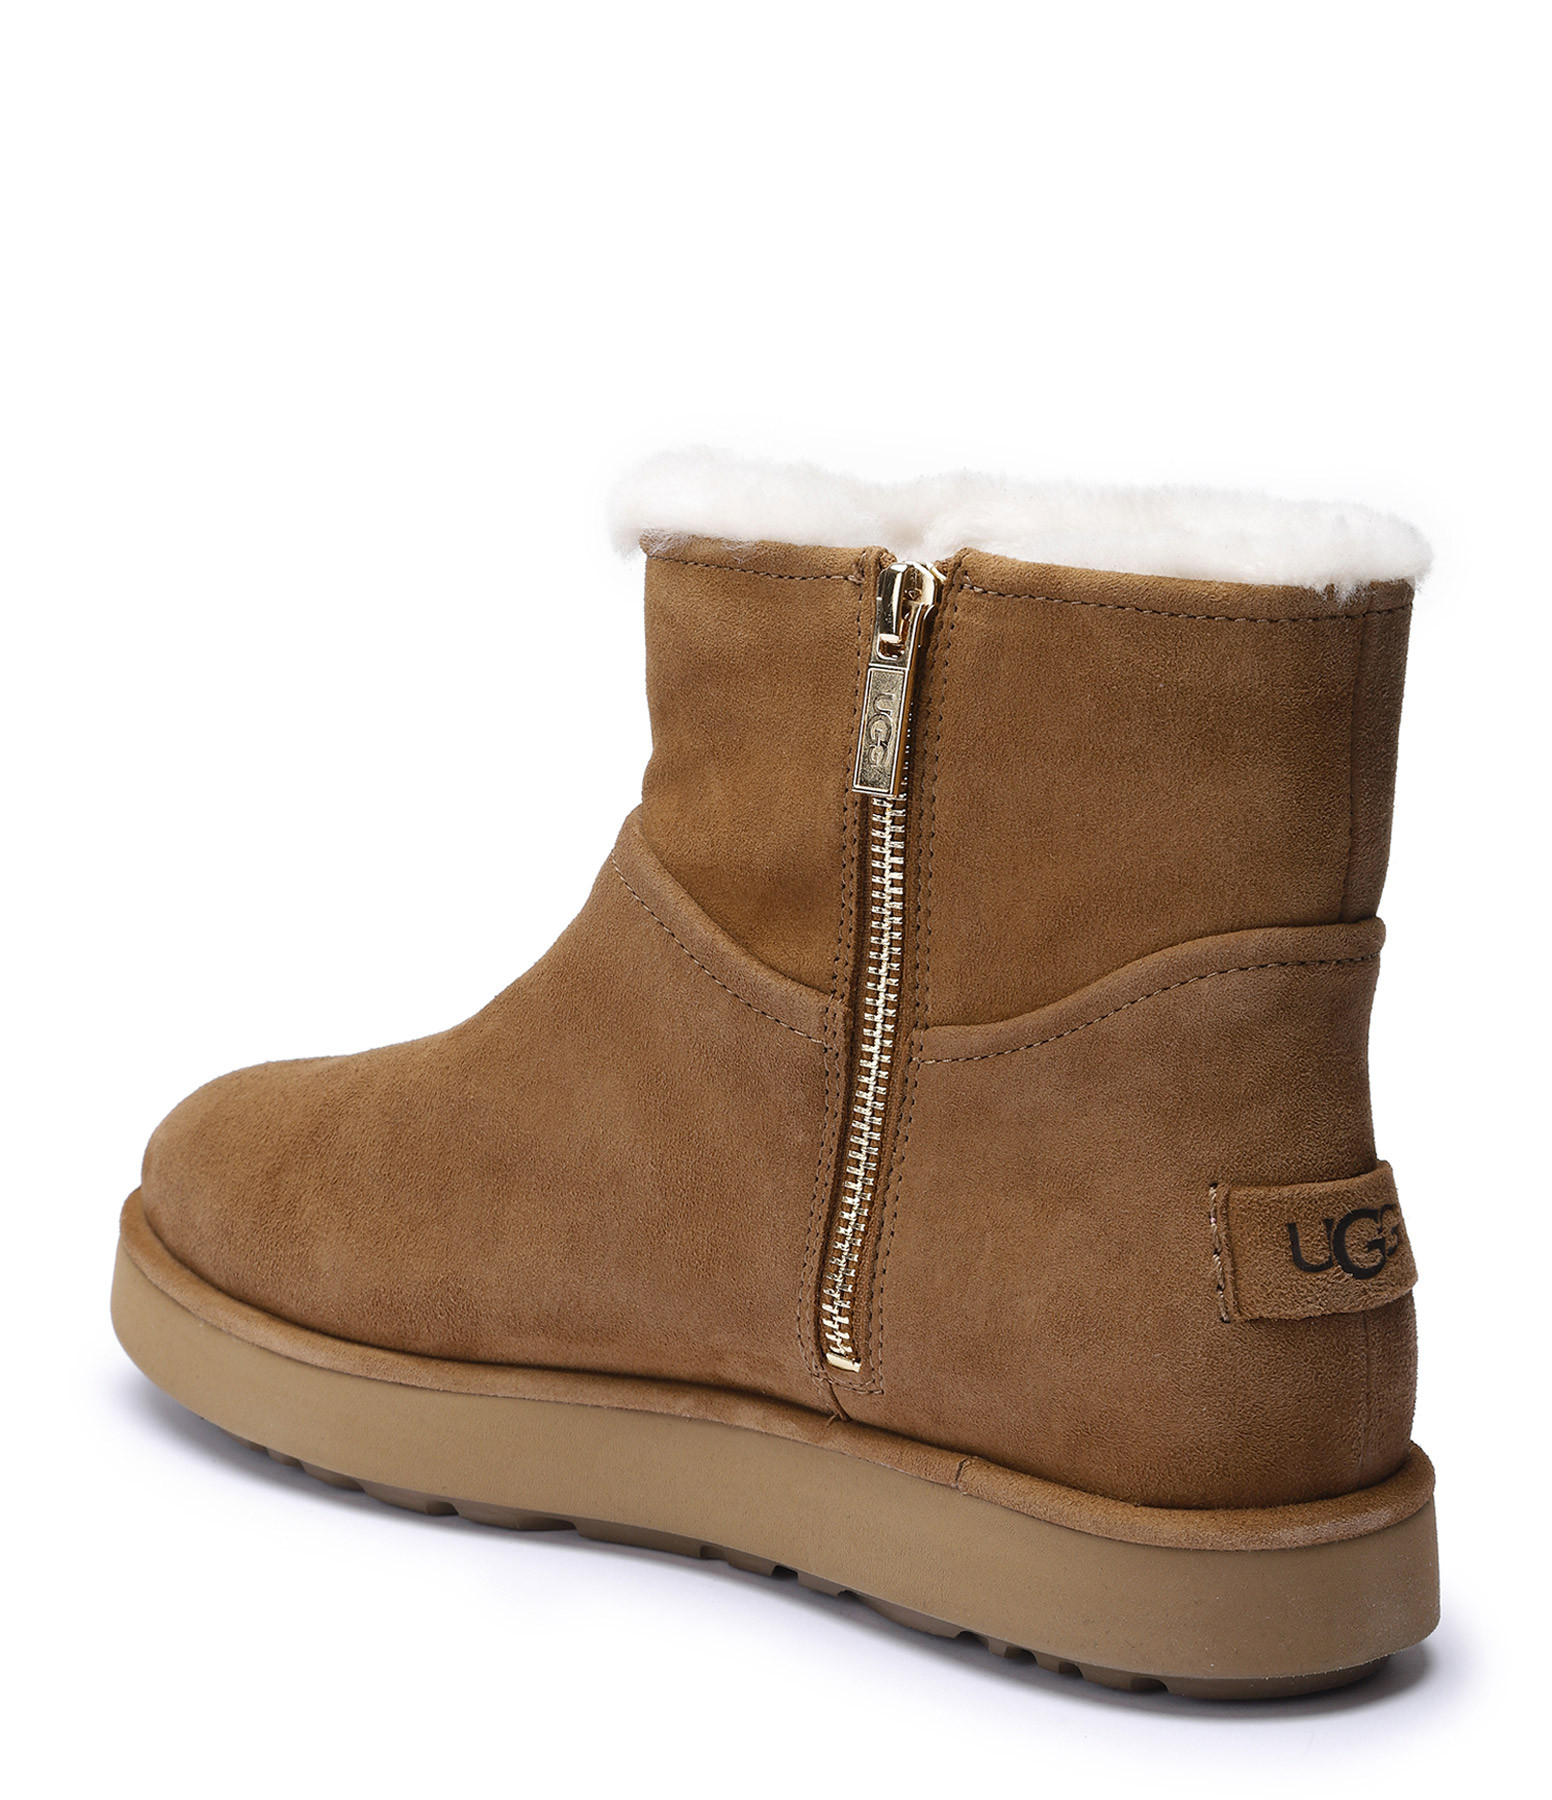 UGG - Bottines Classic Mini BLVD Bruno